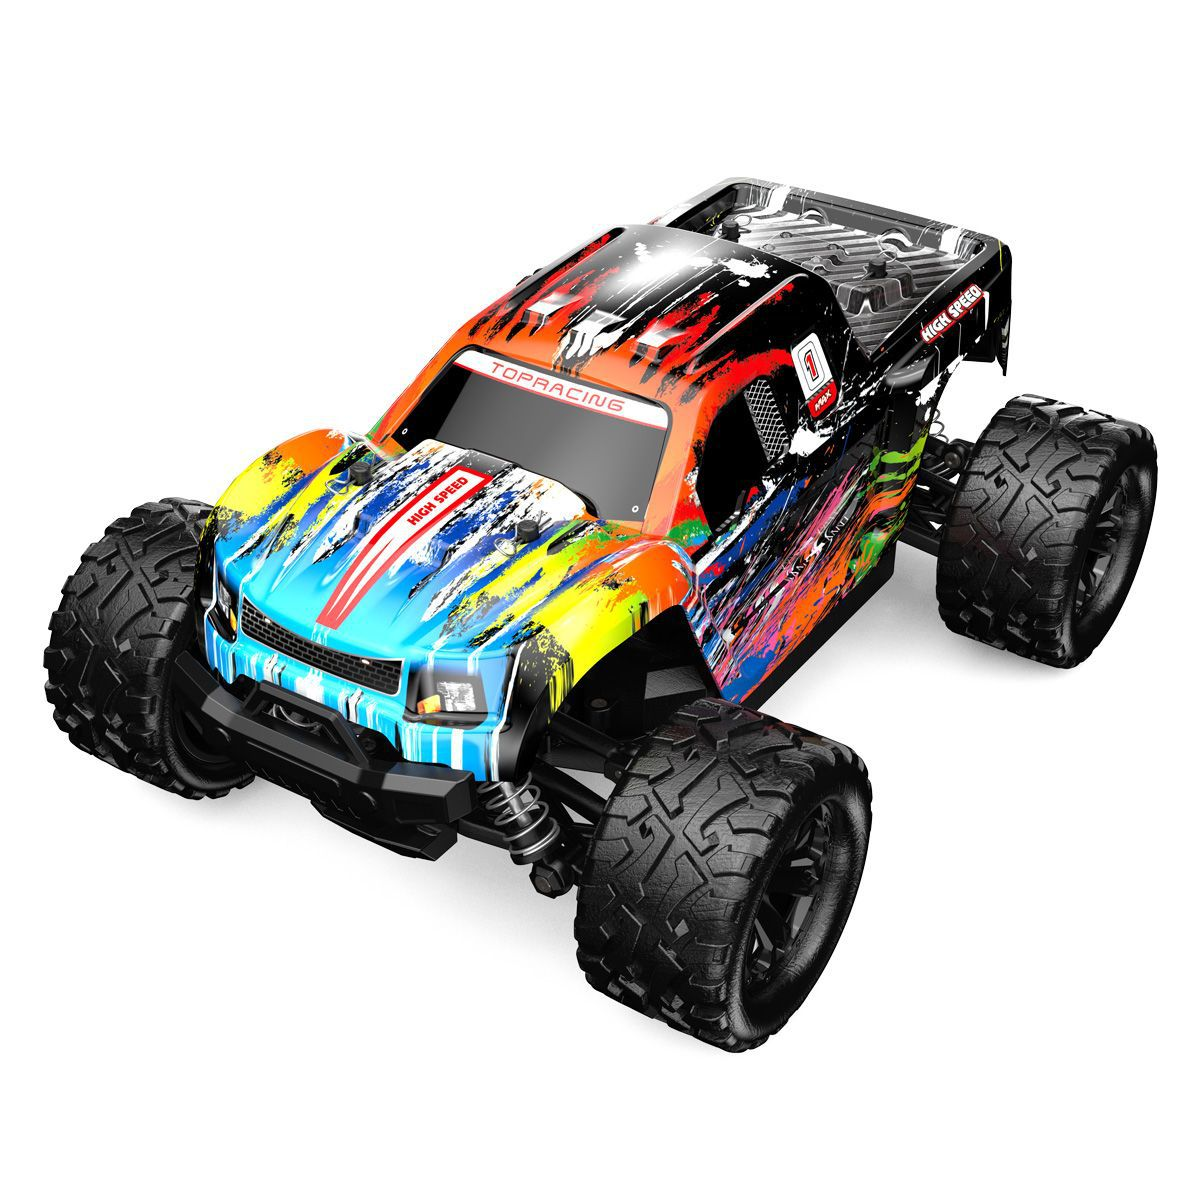 RC Car Truck Bigfoot Monster 4WD High Speed Fast Drift 40KM Remote Control Cars Crawler Climbing Off-Road Children Kids Toy Gift enlarge